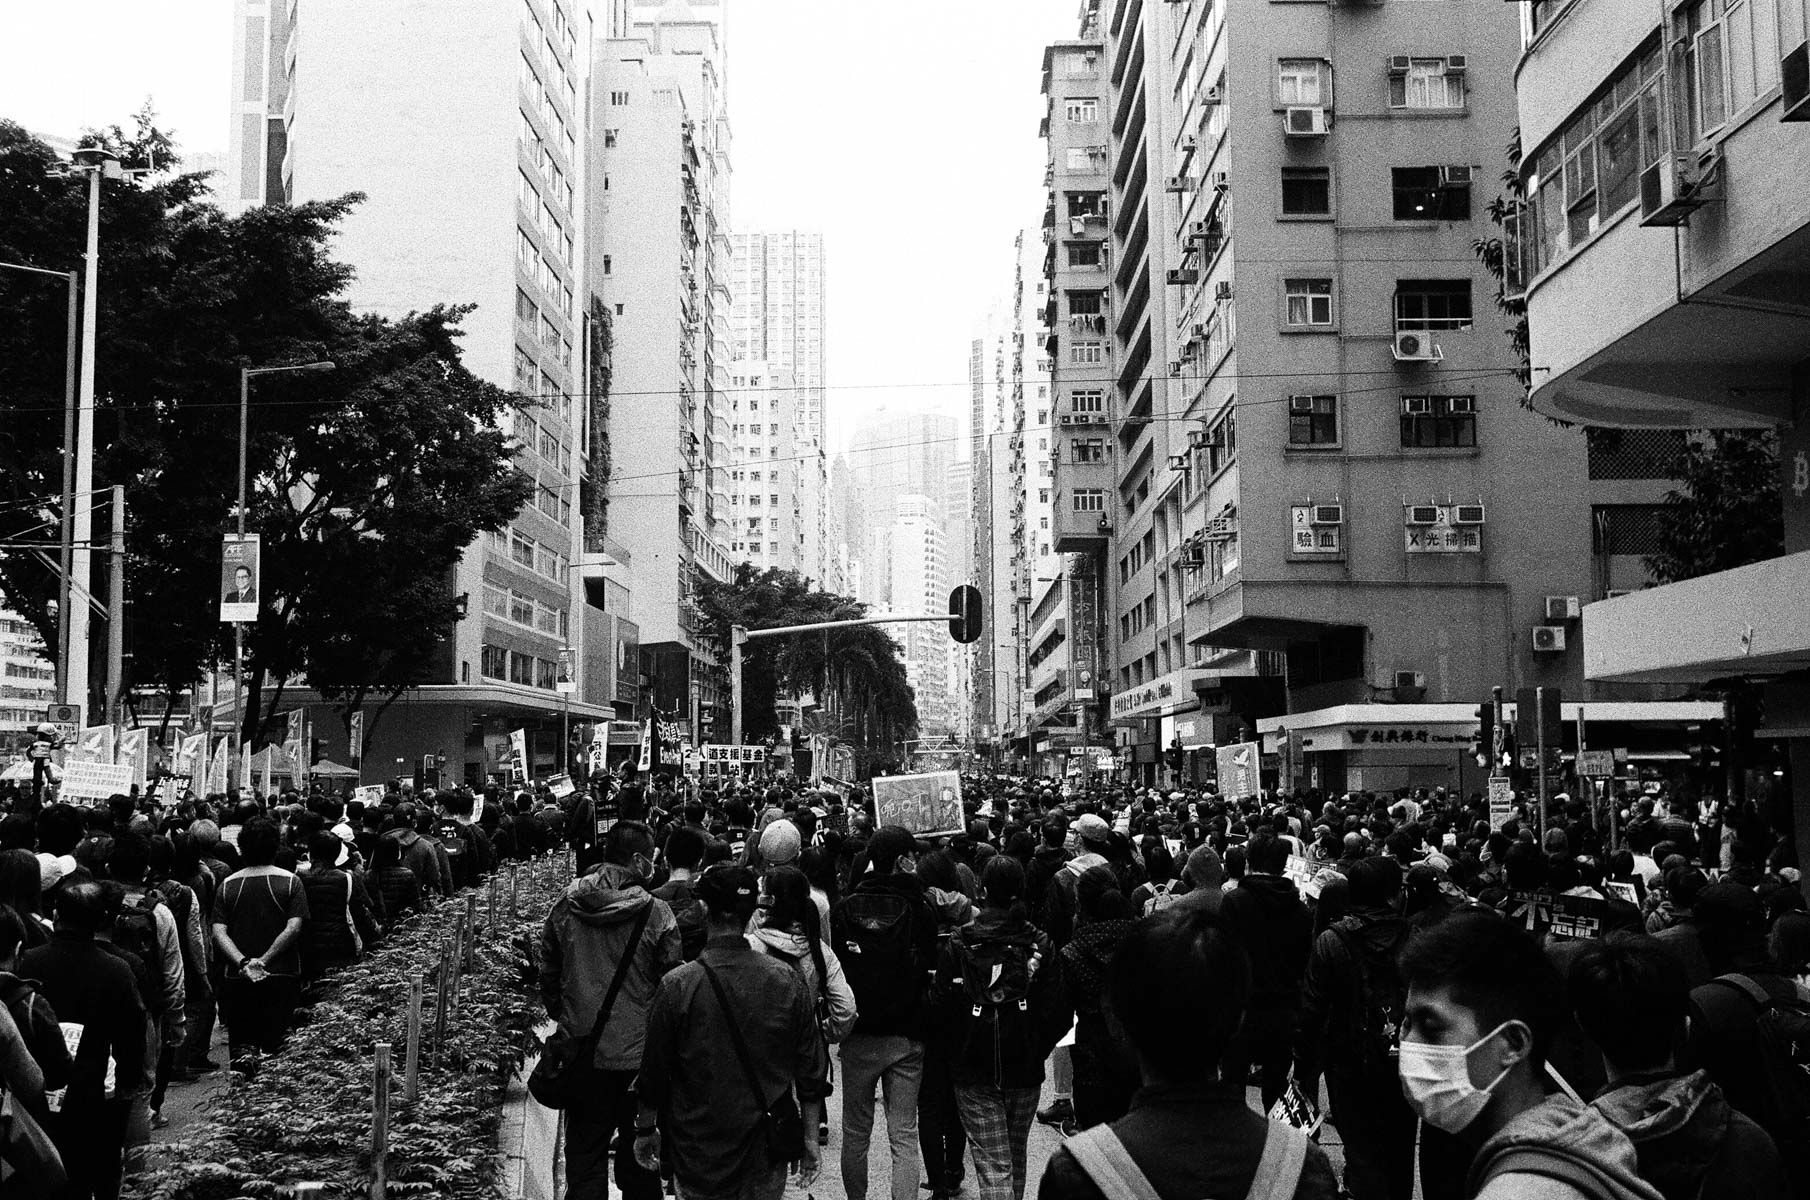 5 Frames... On New Year's Day 2020 in Hong Kong with ILFORD HP5 PLUS (EI 800 / 35mm format Nikon FM2) - by Nick Lumber